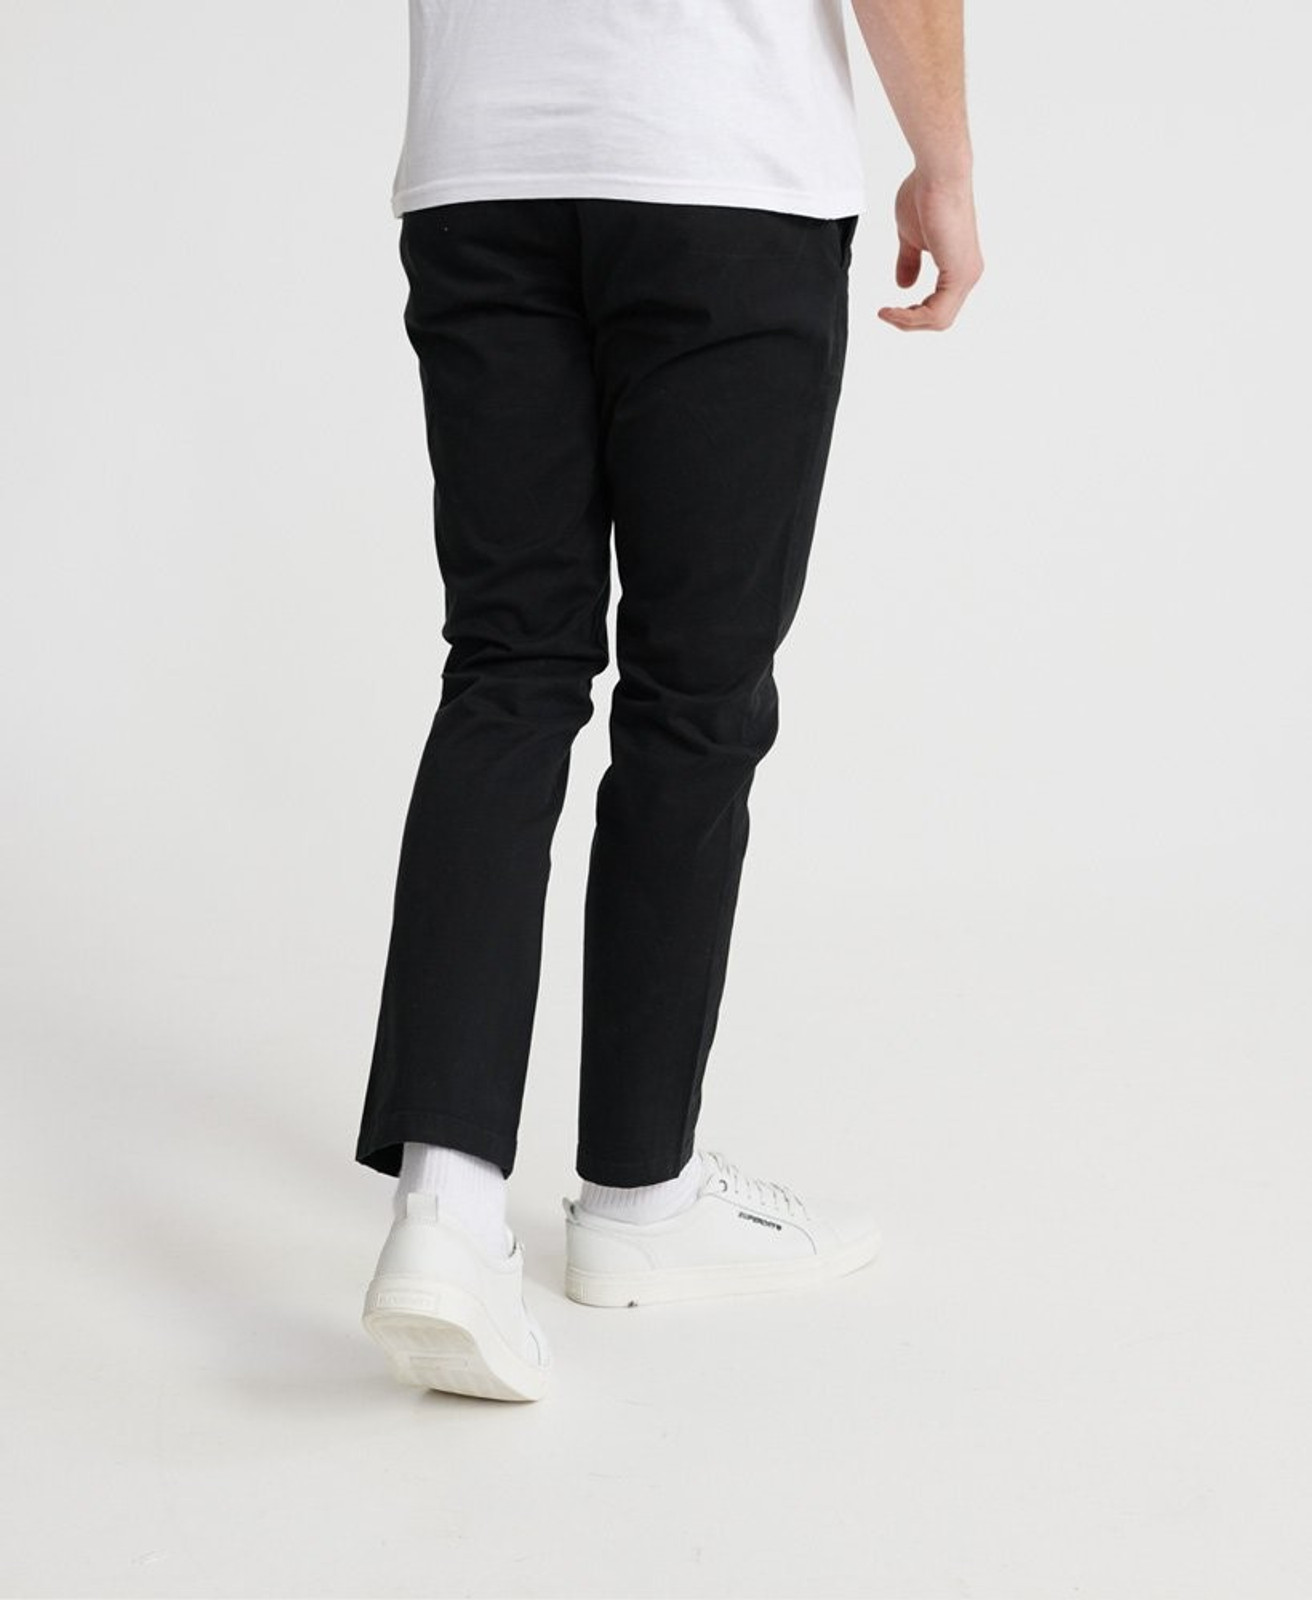 Superdry Mens EDIT CHINO Black Chino Pants 2